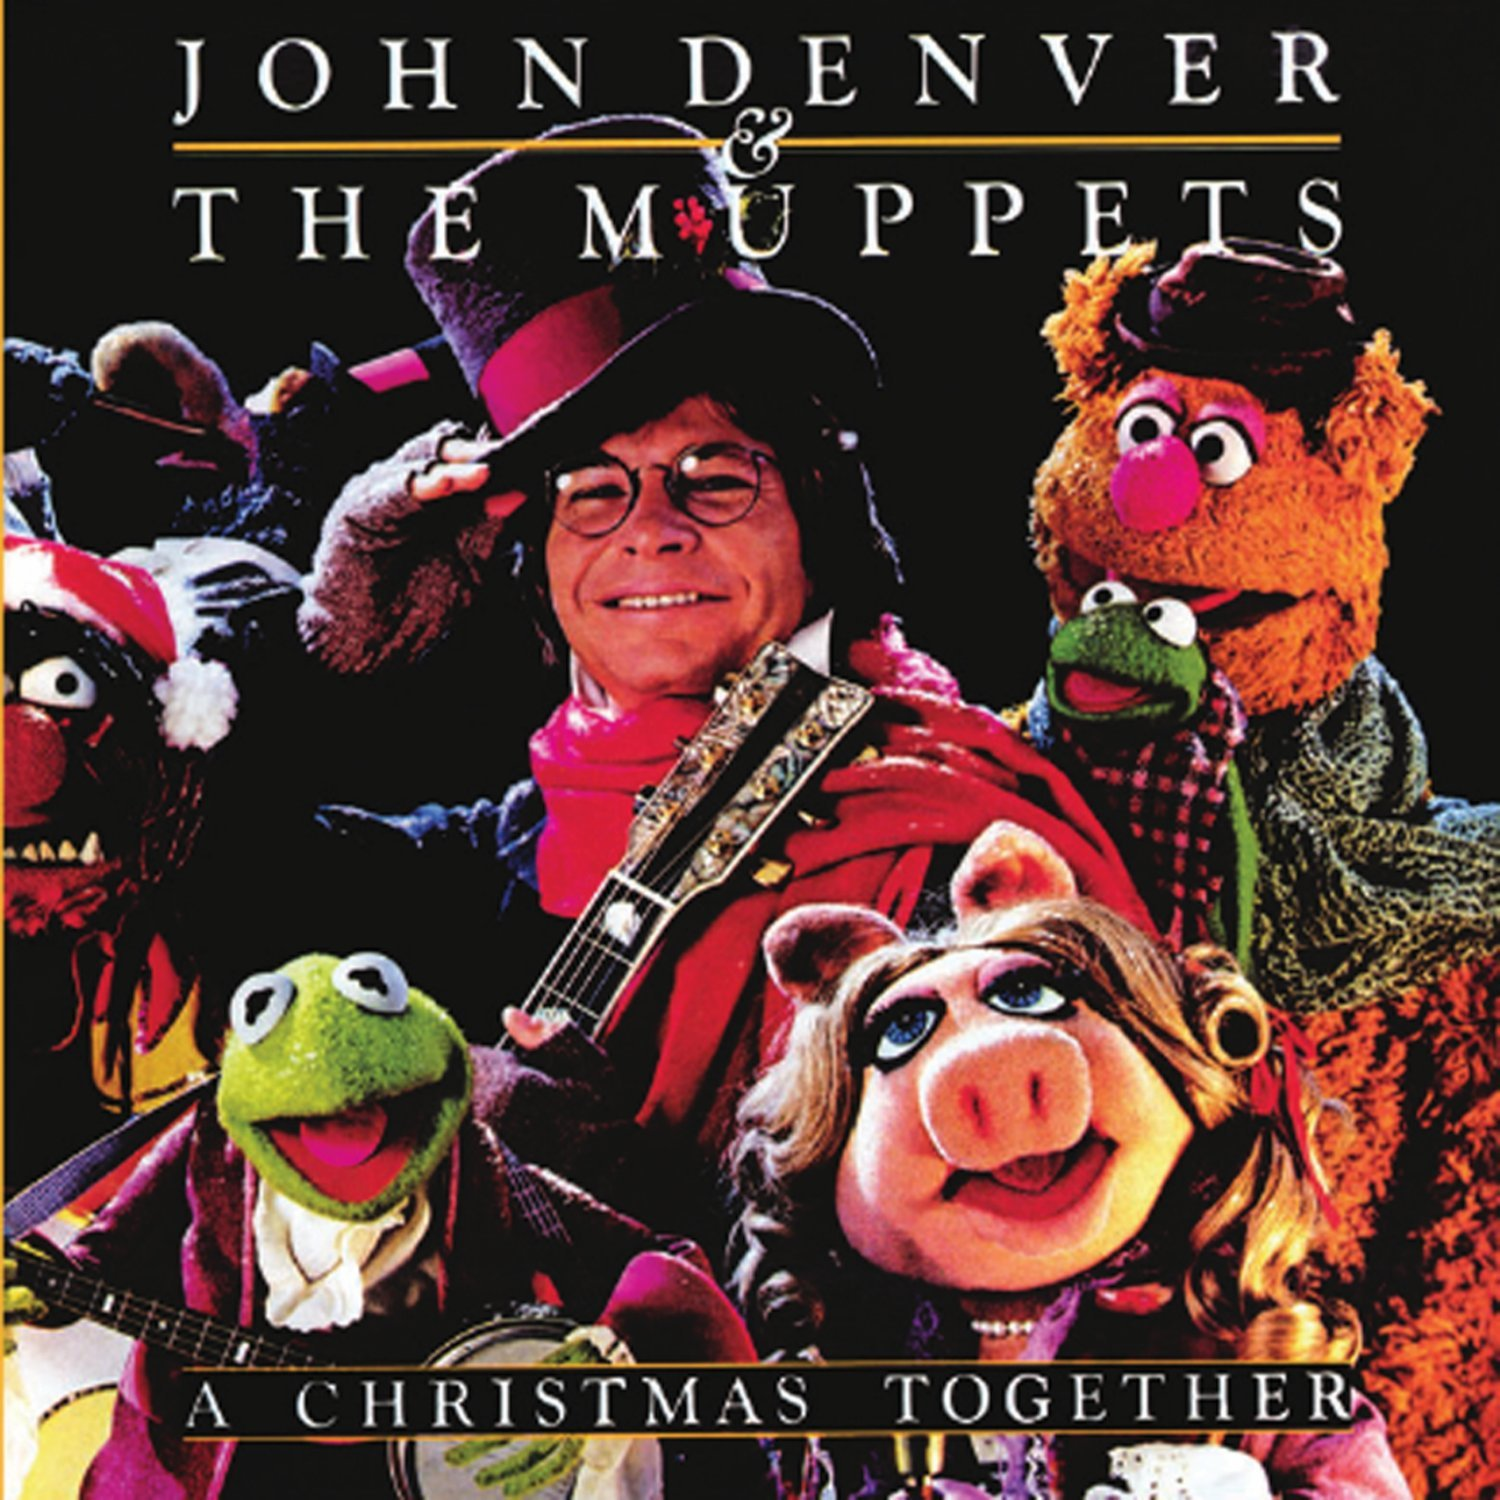 John Denver & The Muppets - A Christmas Together - Amazon.com Music